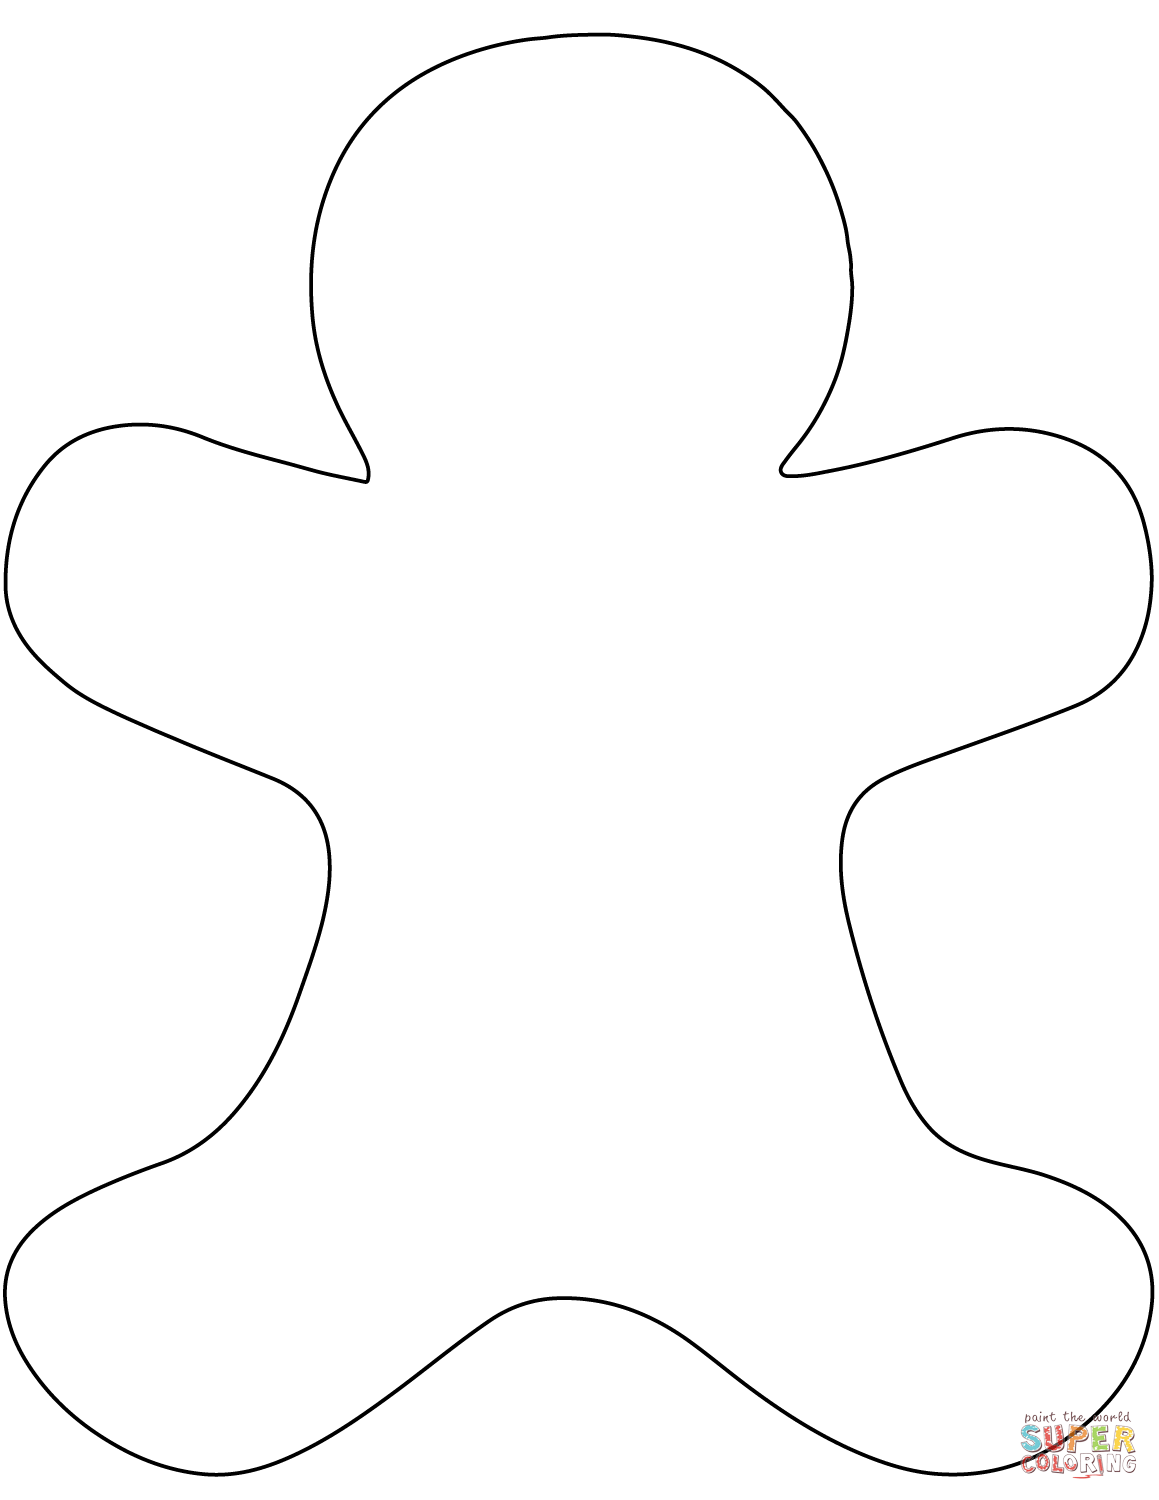 blank gingerbread man coloring page blank gingerbread man template gingerbread man coloring gingerbread page man coloring blank